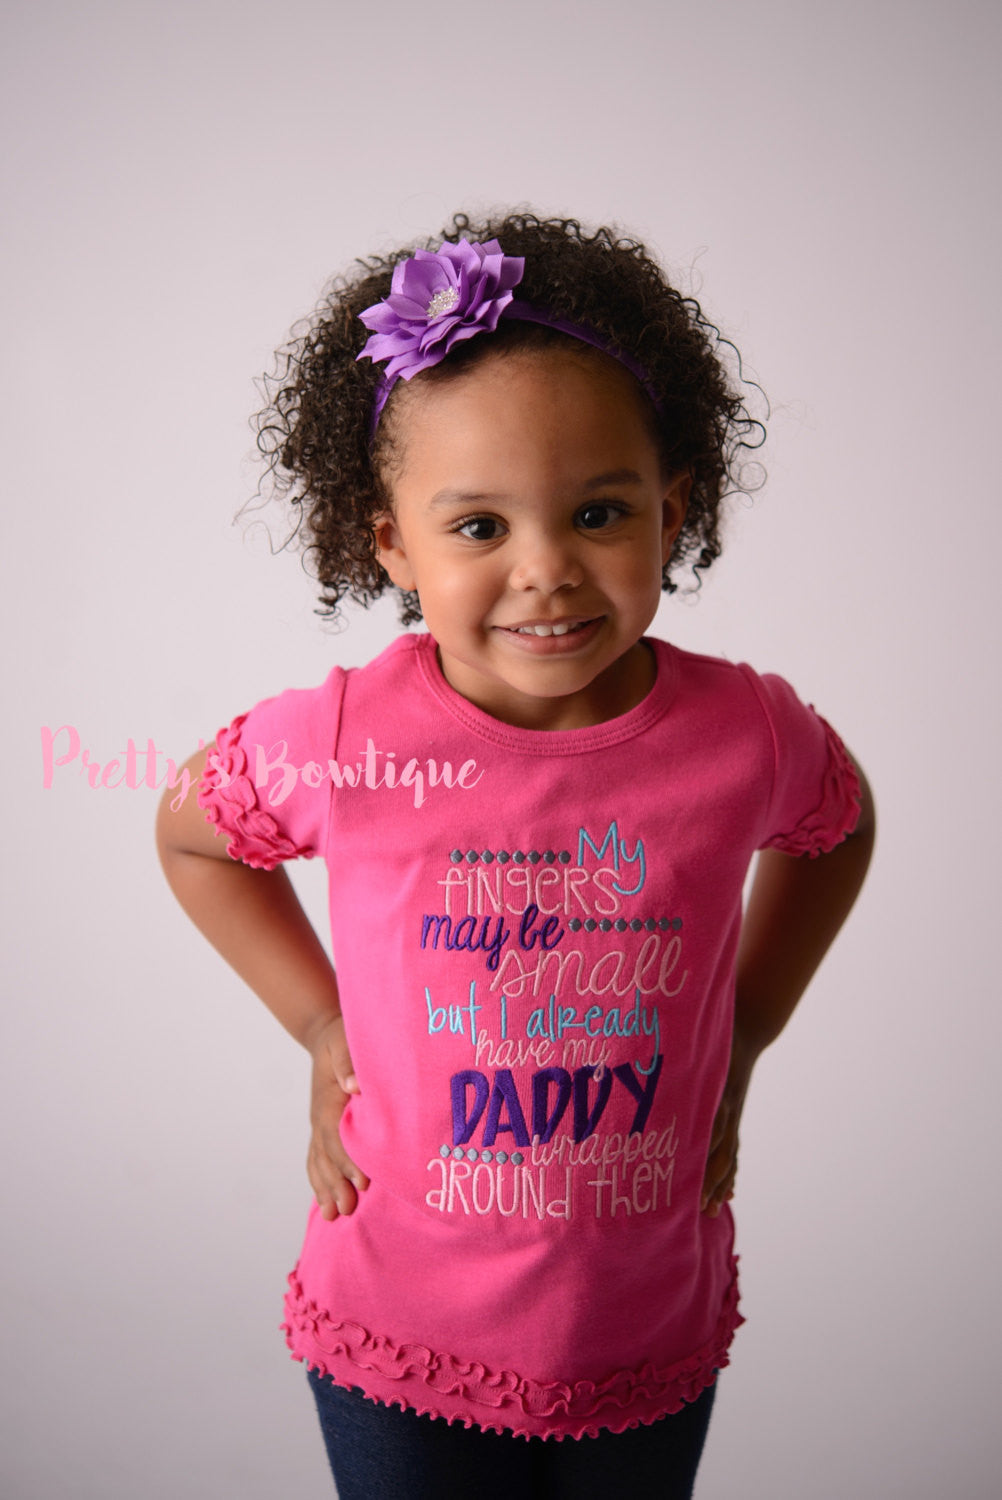 Girls T Shirt Or Bodysuit Father S Day Shirt My Fingers May Be Small But I Already Have My Daddy Wrapped Around Them Pretty 39 S Bowtique